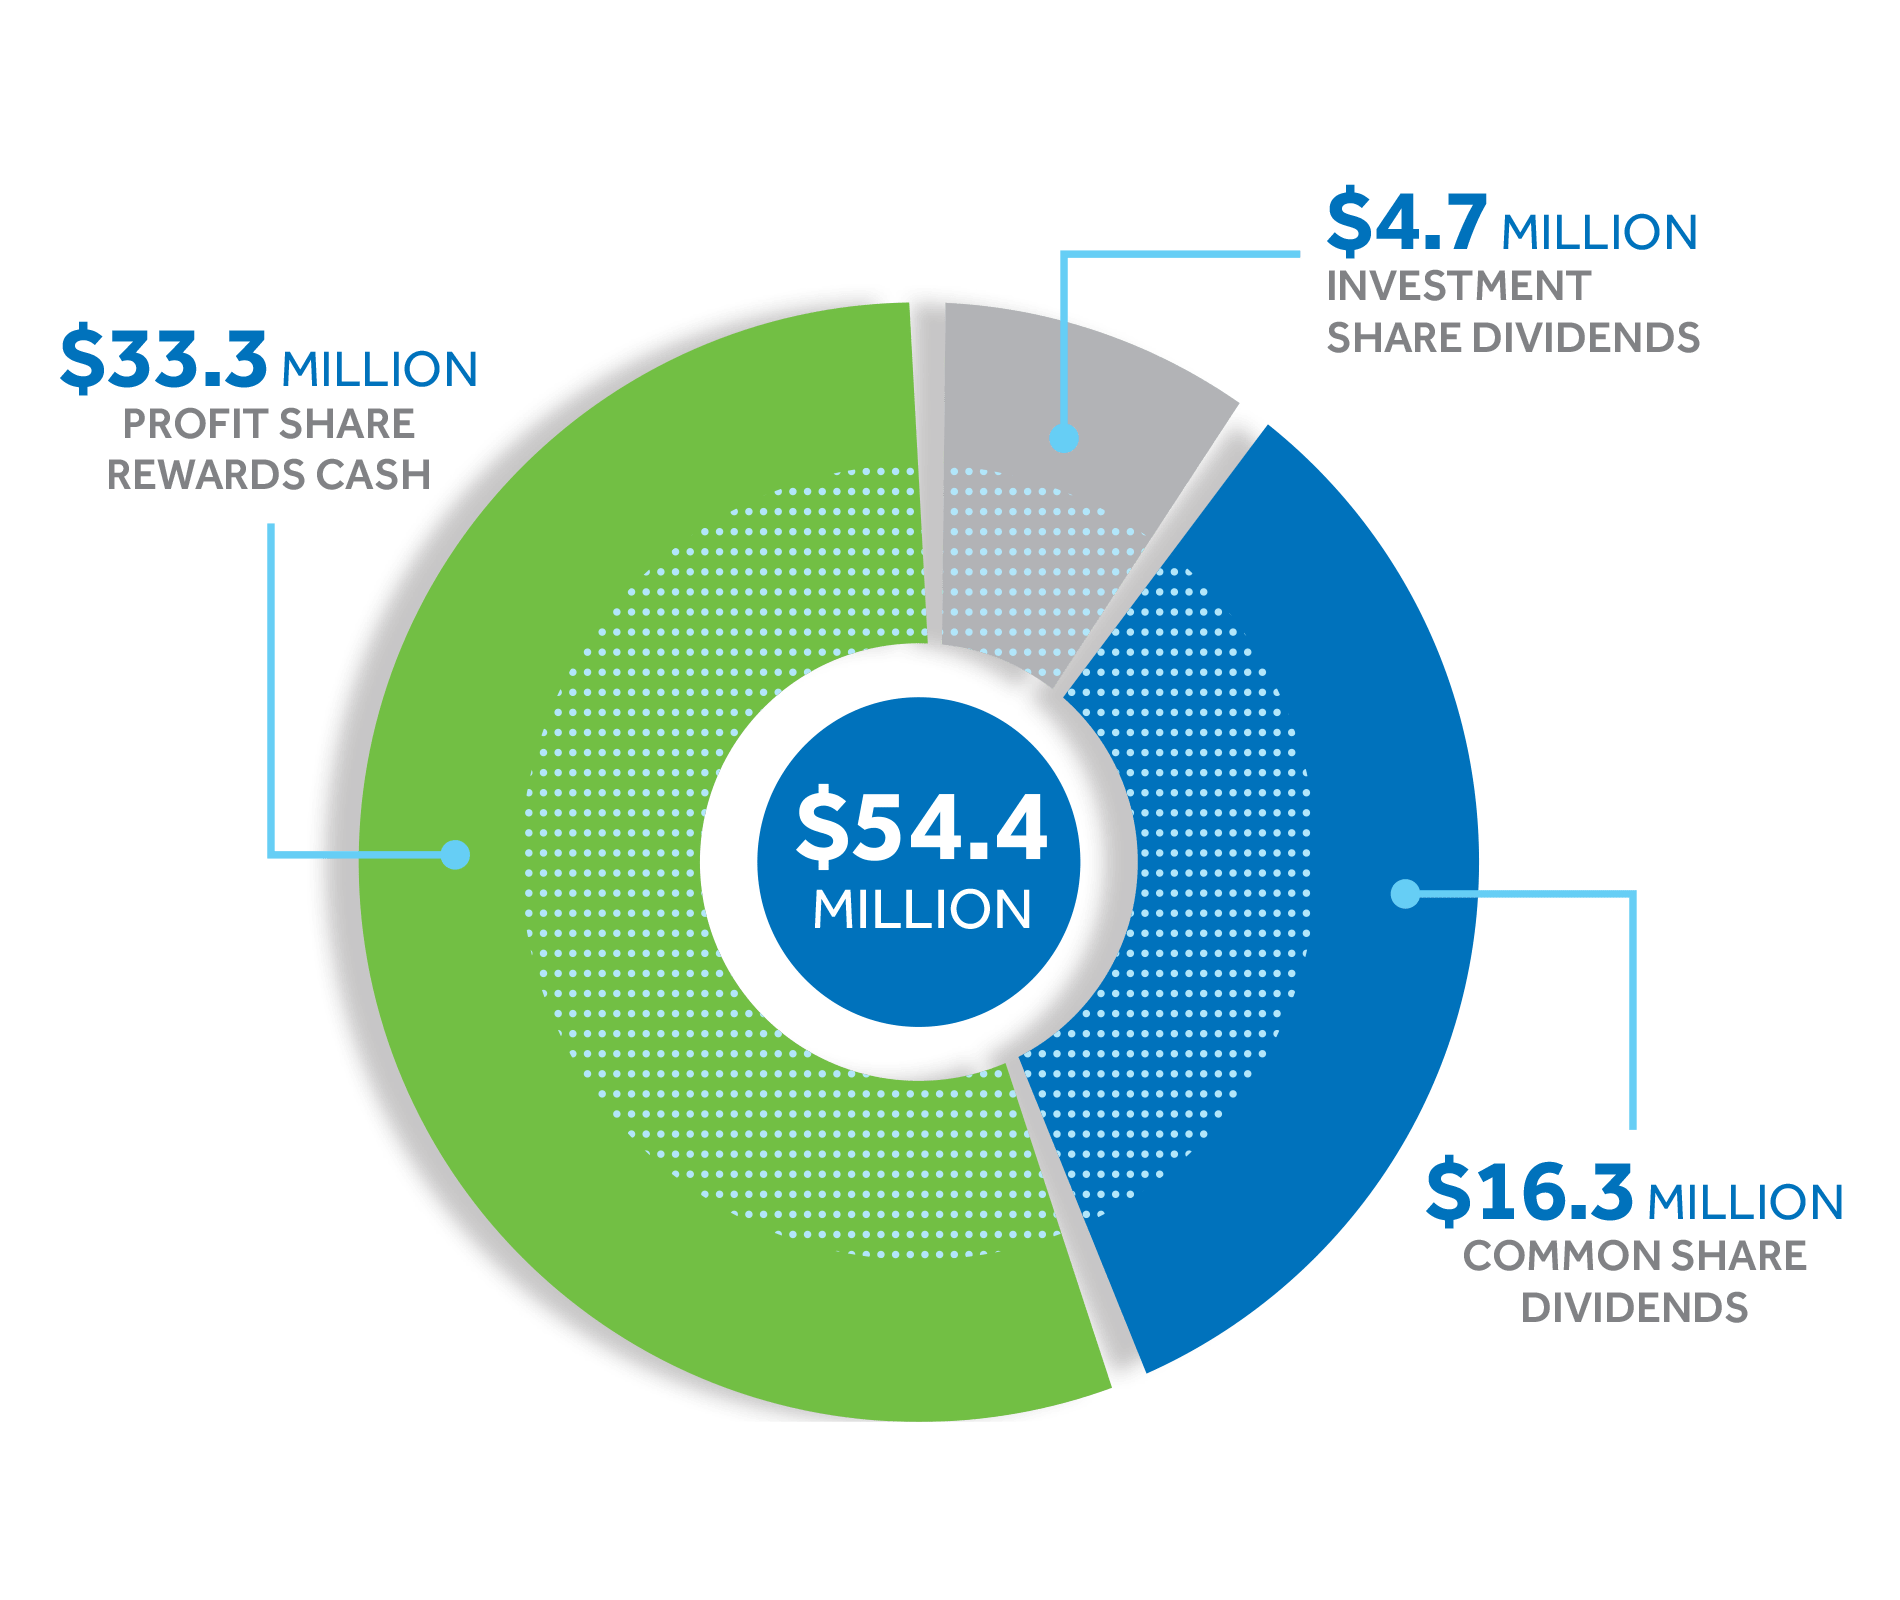 Profit Share Infographic for 2020. A pie chart showing the distribution of a total of $54.4 million Profit Share in 2020: $33.3 million for Profit Share Rewards cash. $4.7 million for investment share dividends. $16.3 million for common share dividends